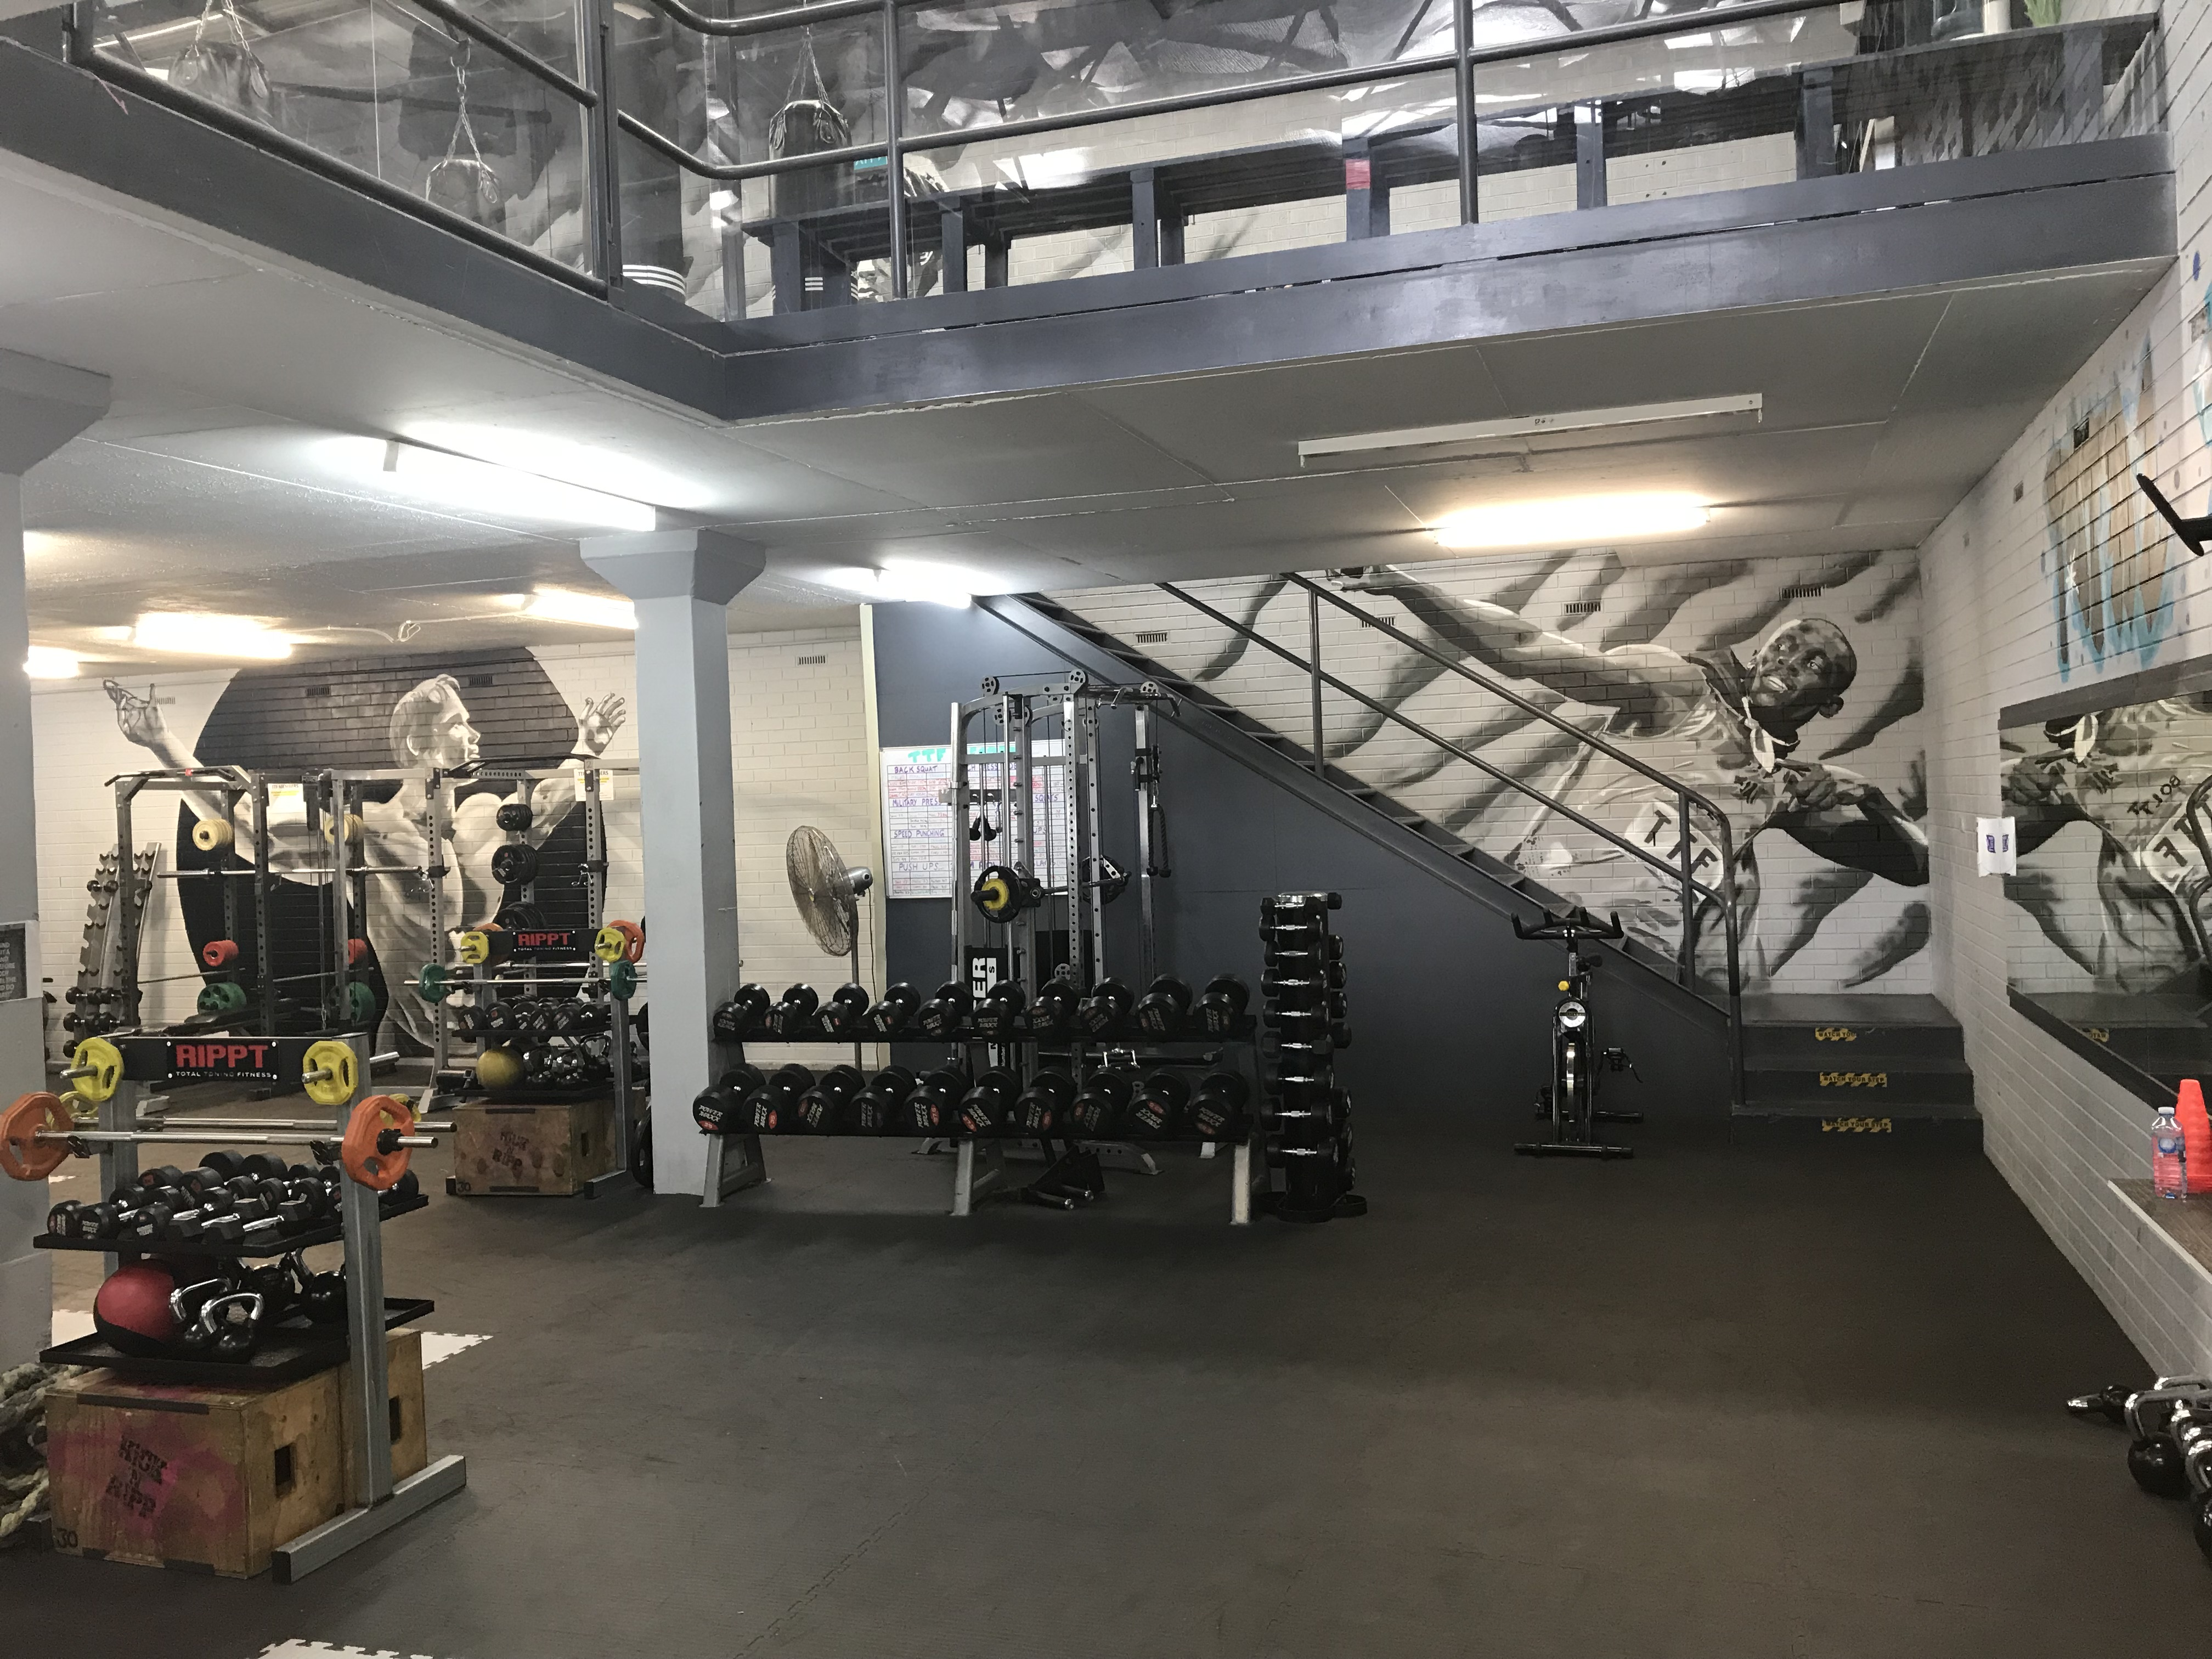 The RIPPT room - weights classes